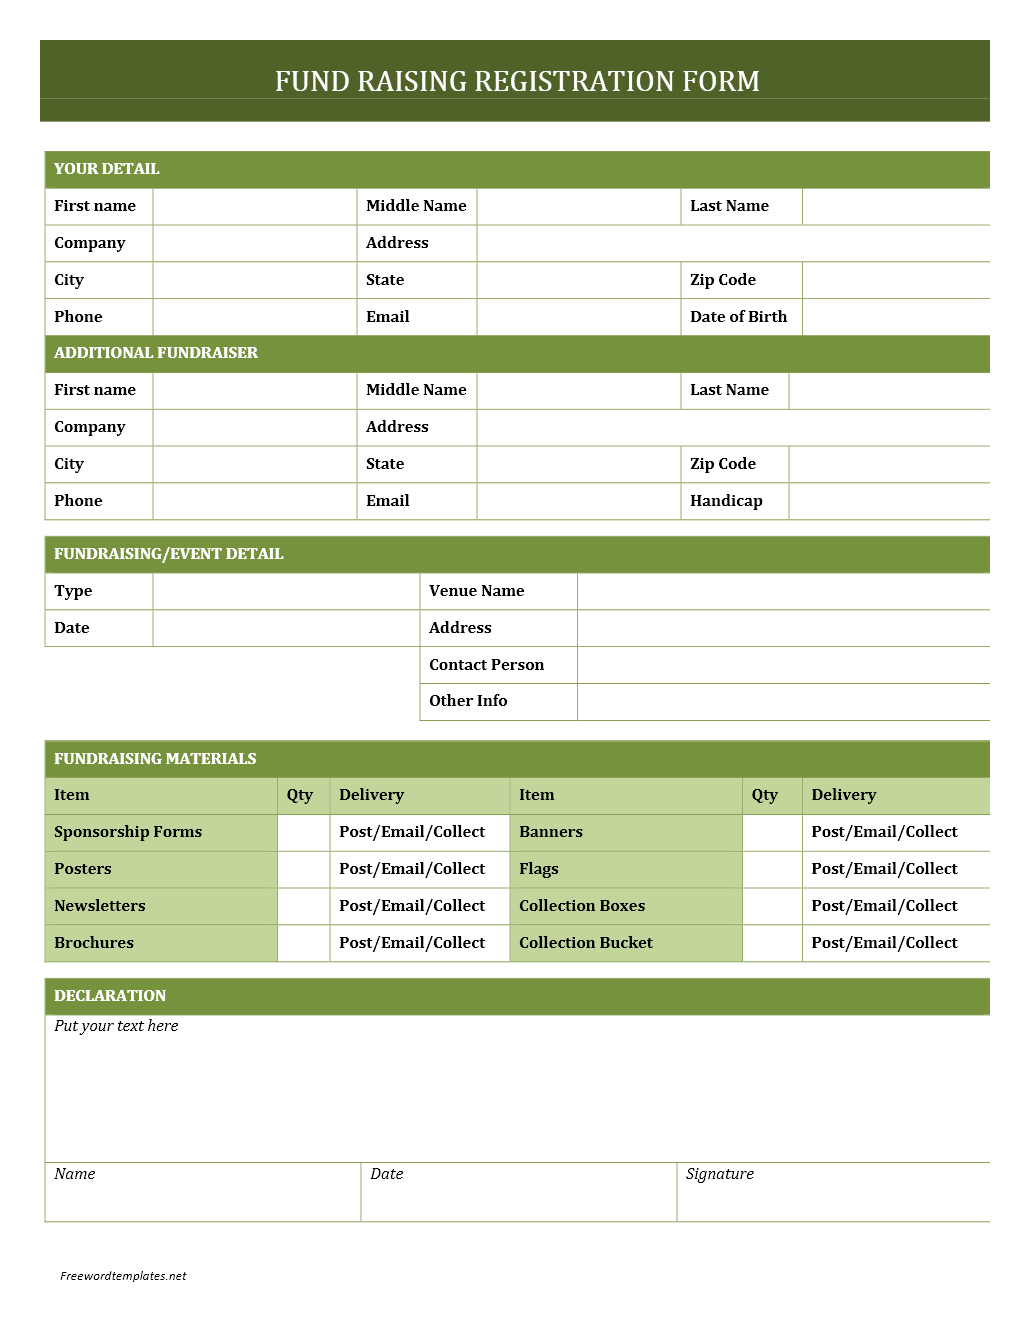 Exceptional Fundraising Registration Form Template Ideas Free Registration Form Template Word